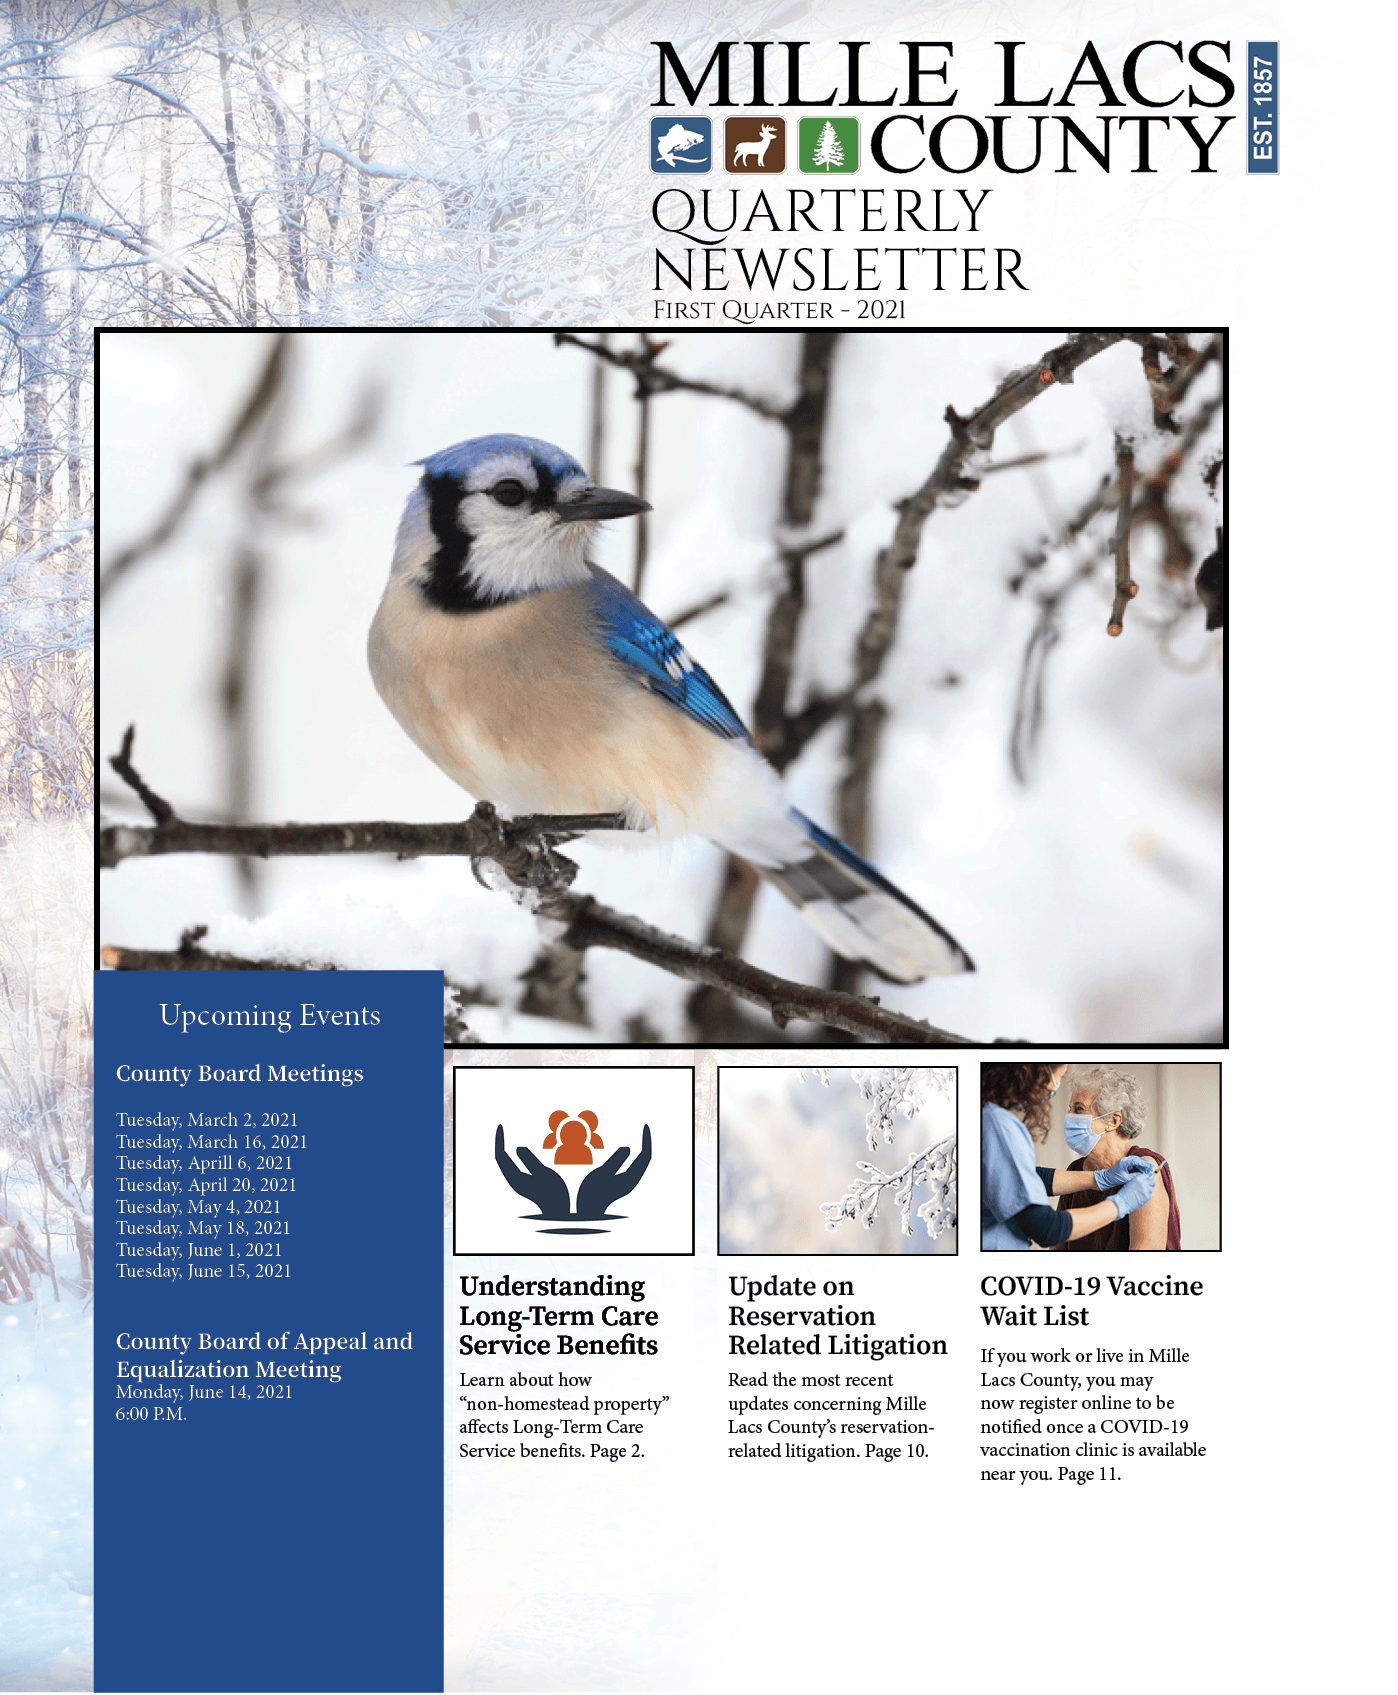 Mille Lacs County Quarterly Newsletter - First Quarter 2021 Cover witha photo of a blue jay bird.